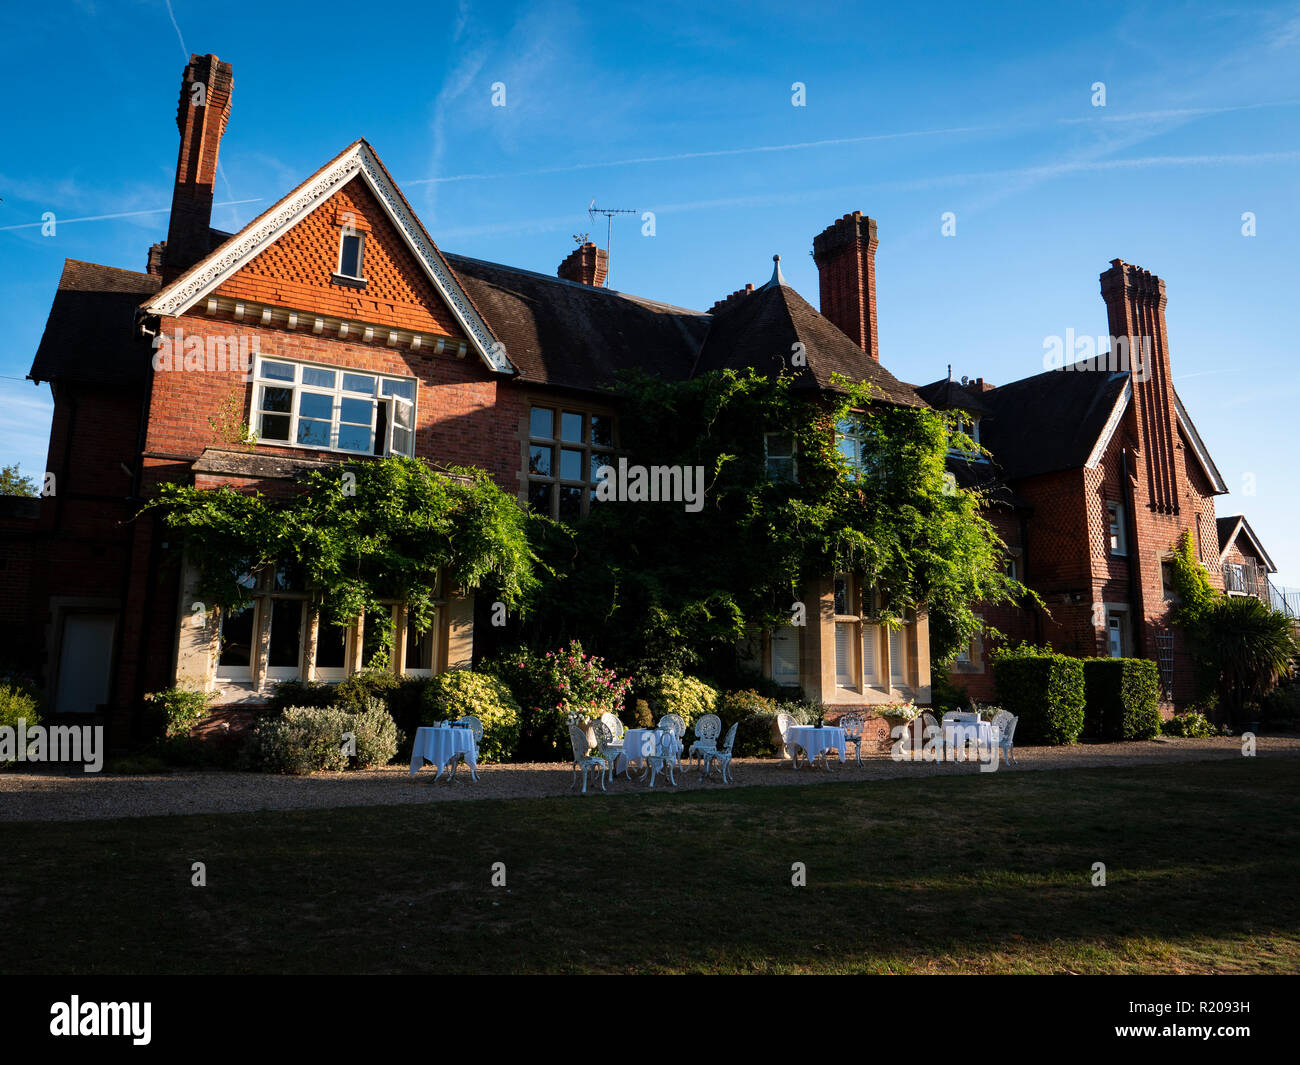 Red Brick Exterior 19th century Victorian Country House. Hotel in early morning sun light Berkshire UK. Stock Photo